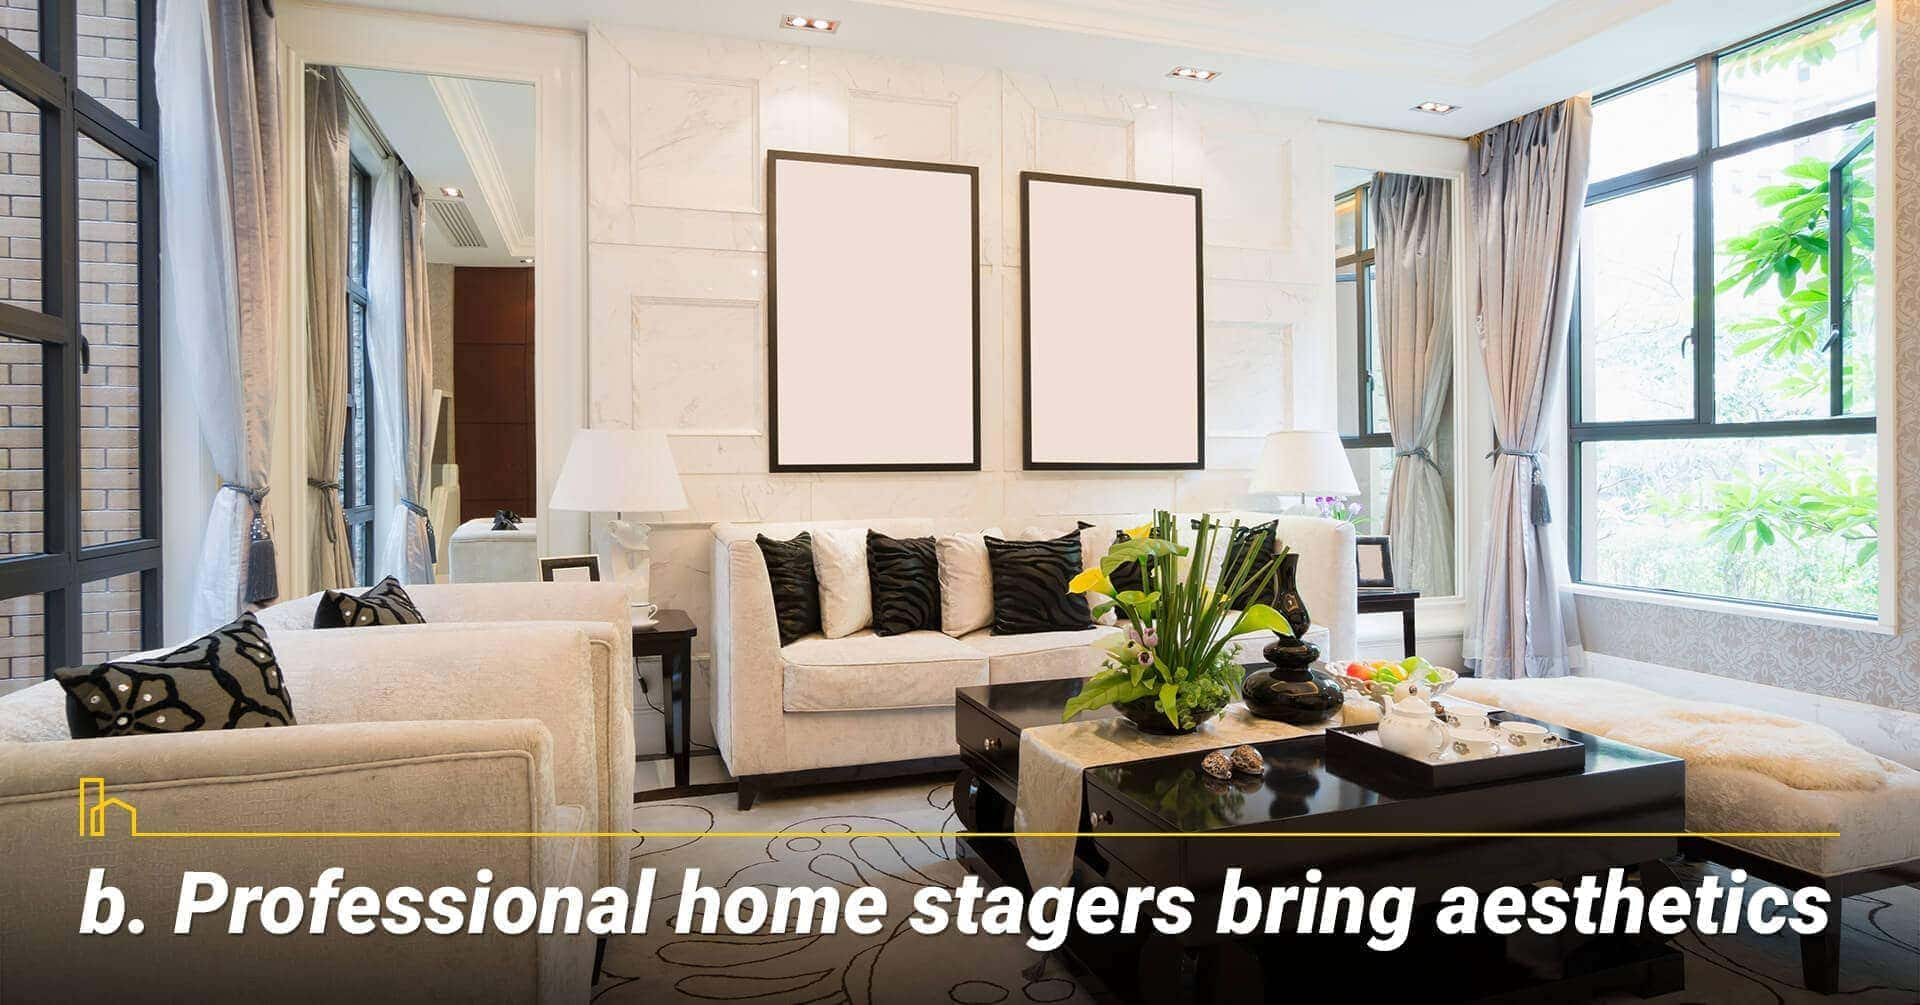 b. Professional home stagers bring aesthetics